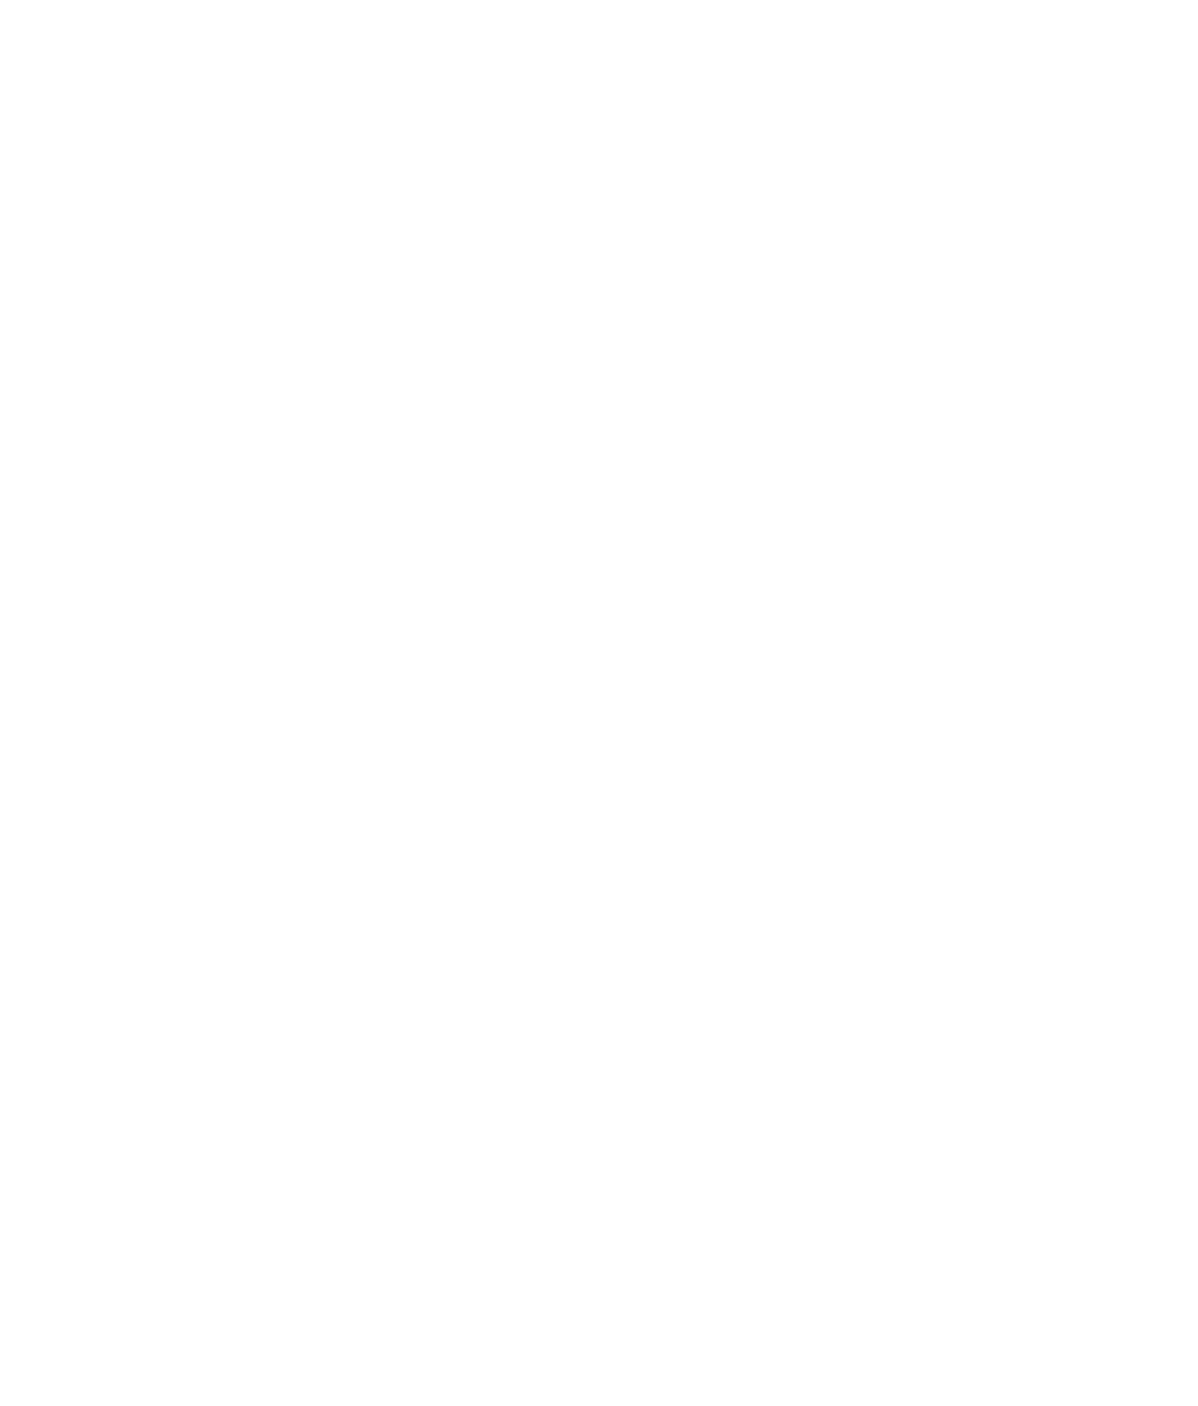 LOGO-consciousism-create-to-contribute.png